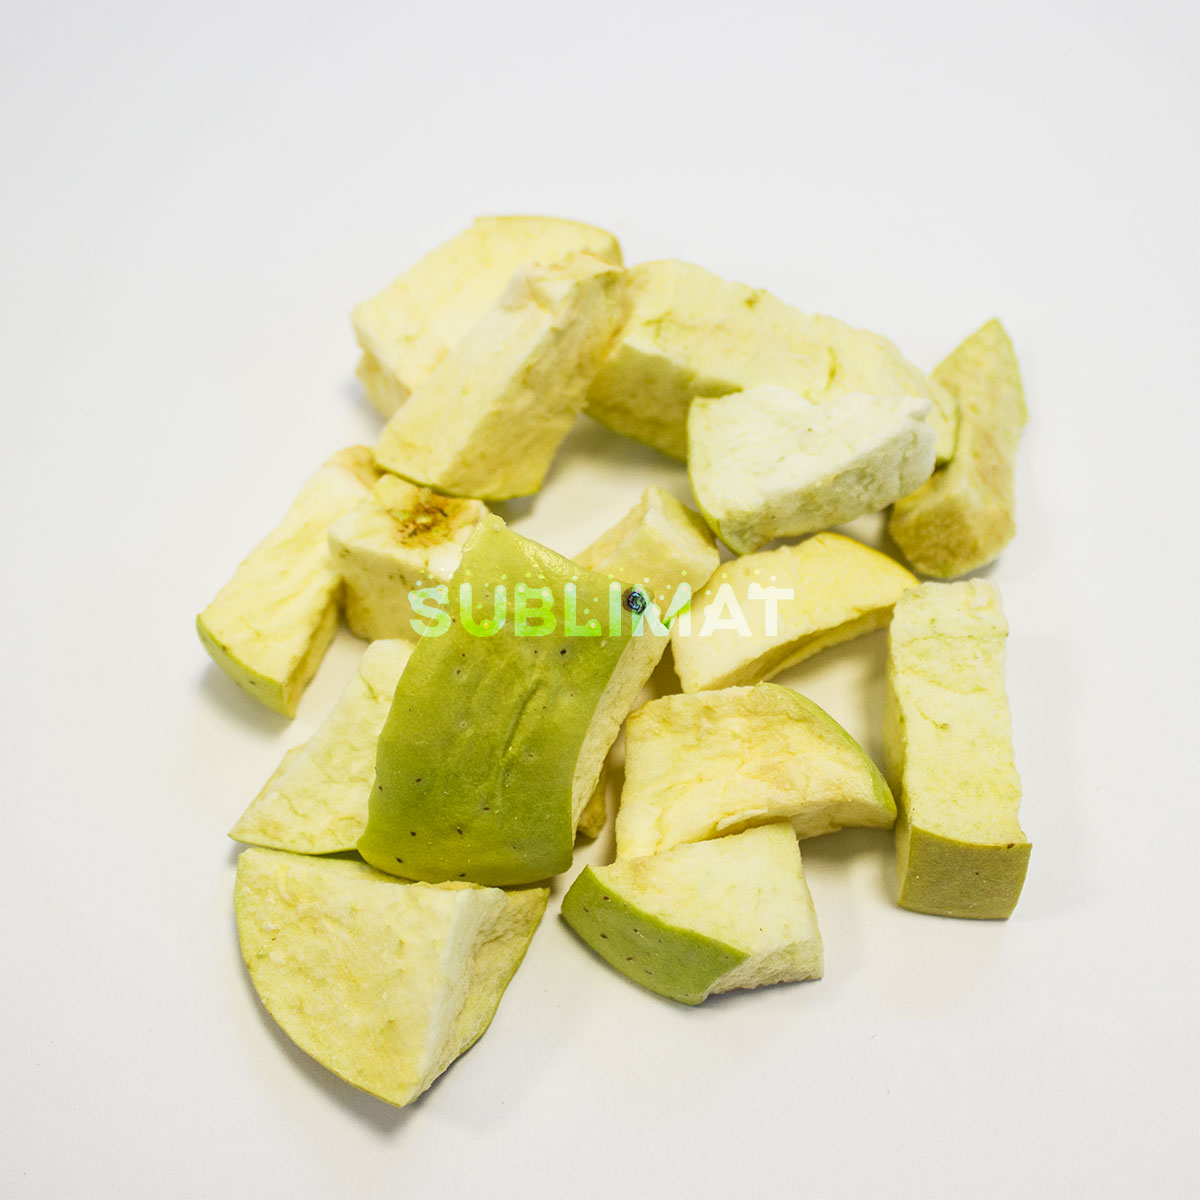 Freeze-dried green apple